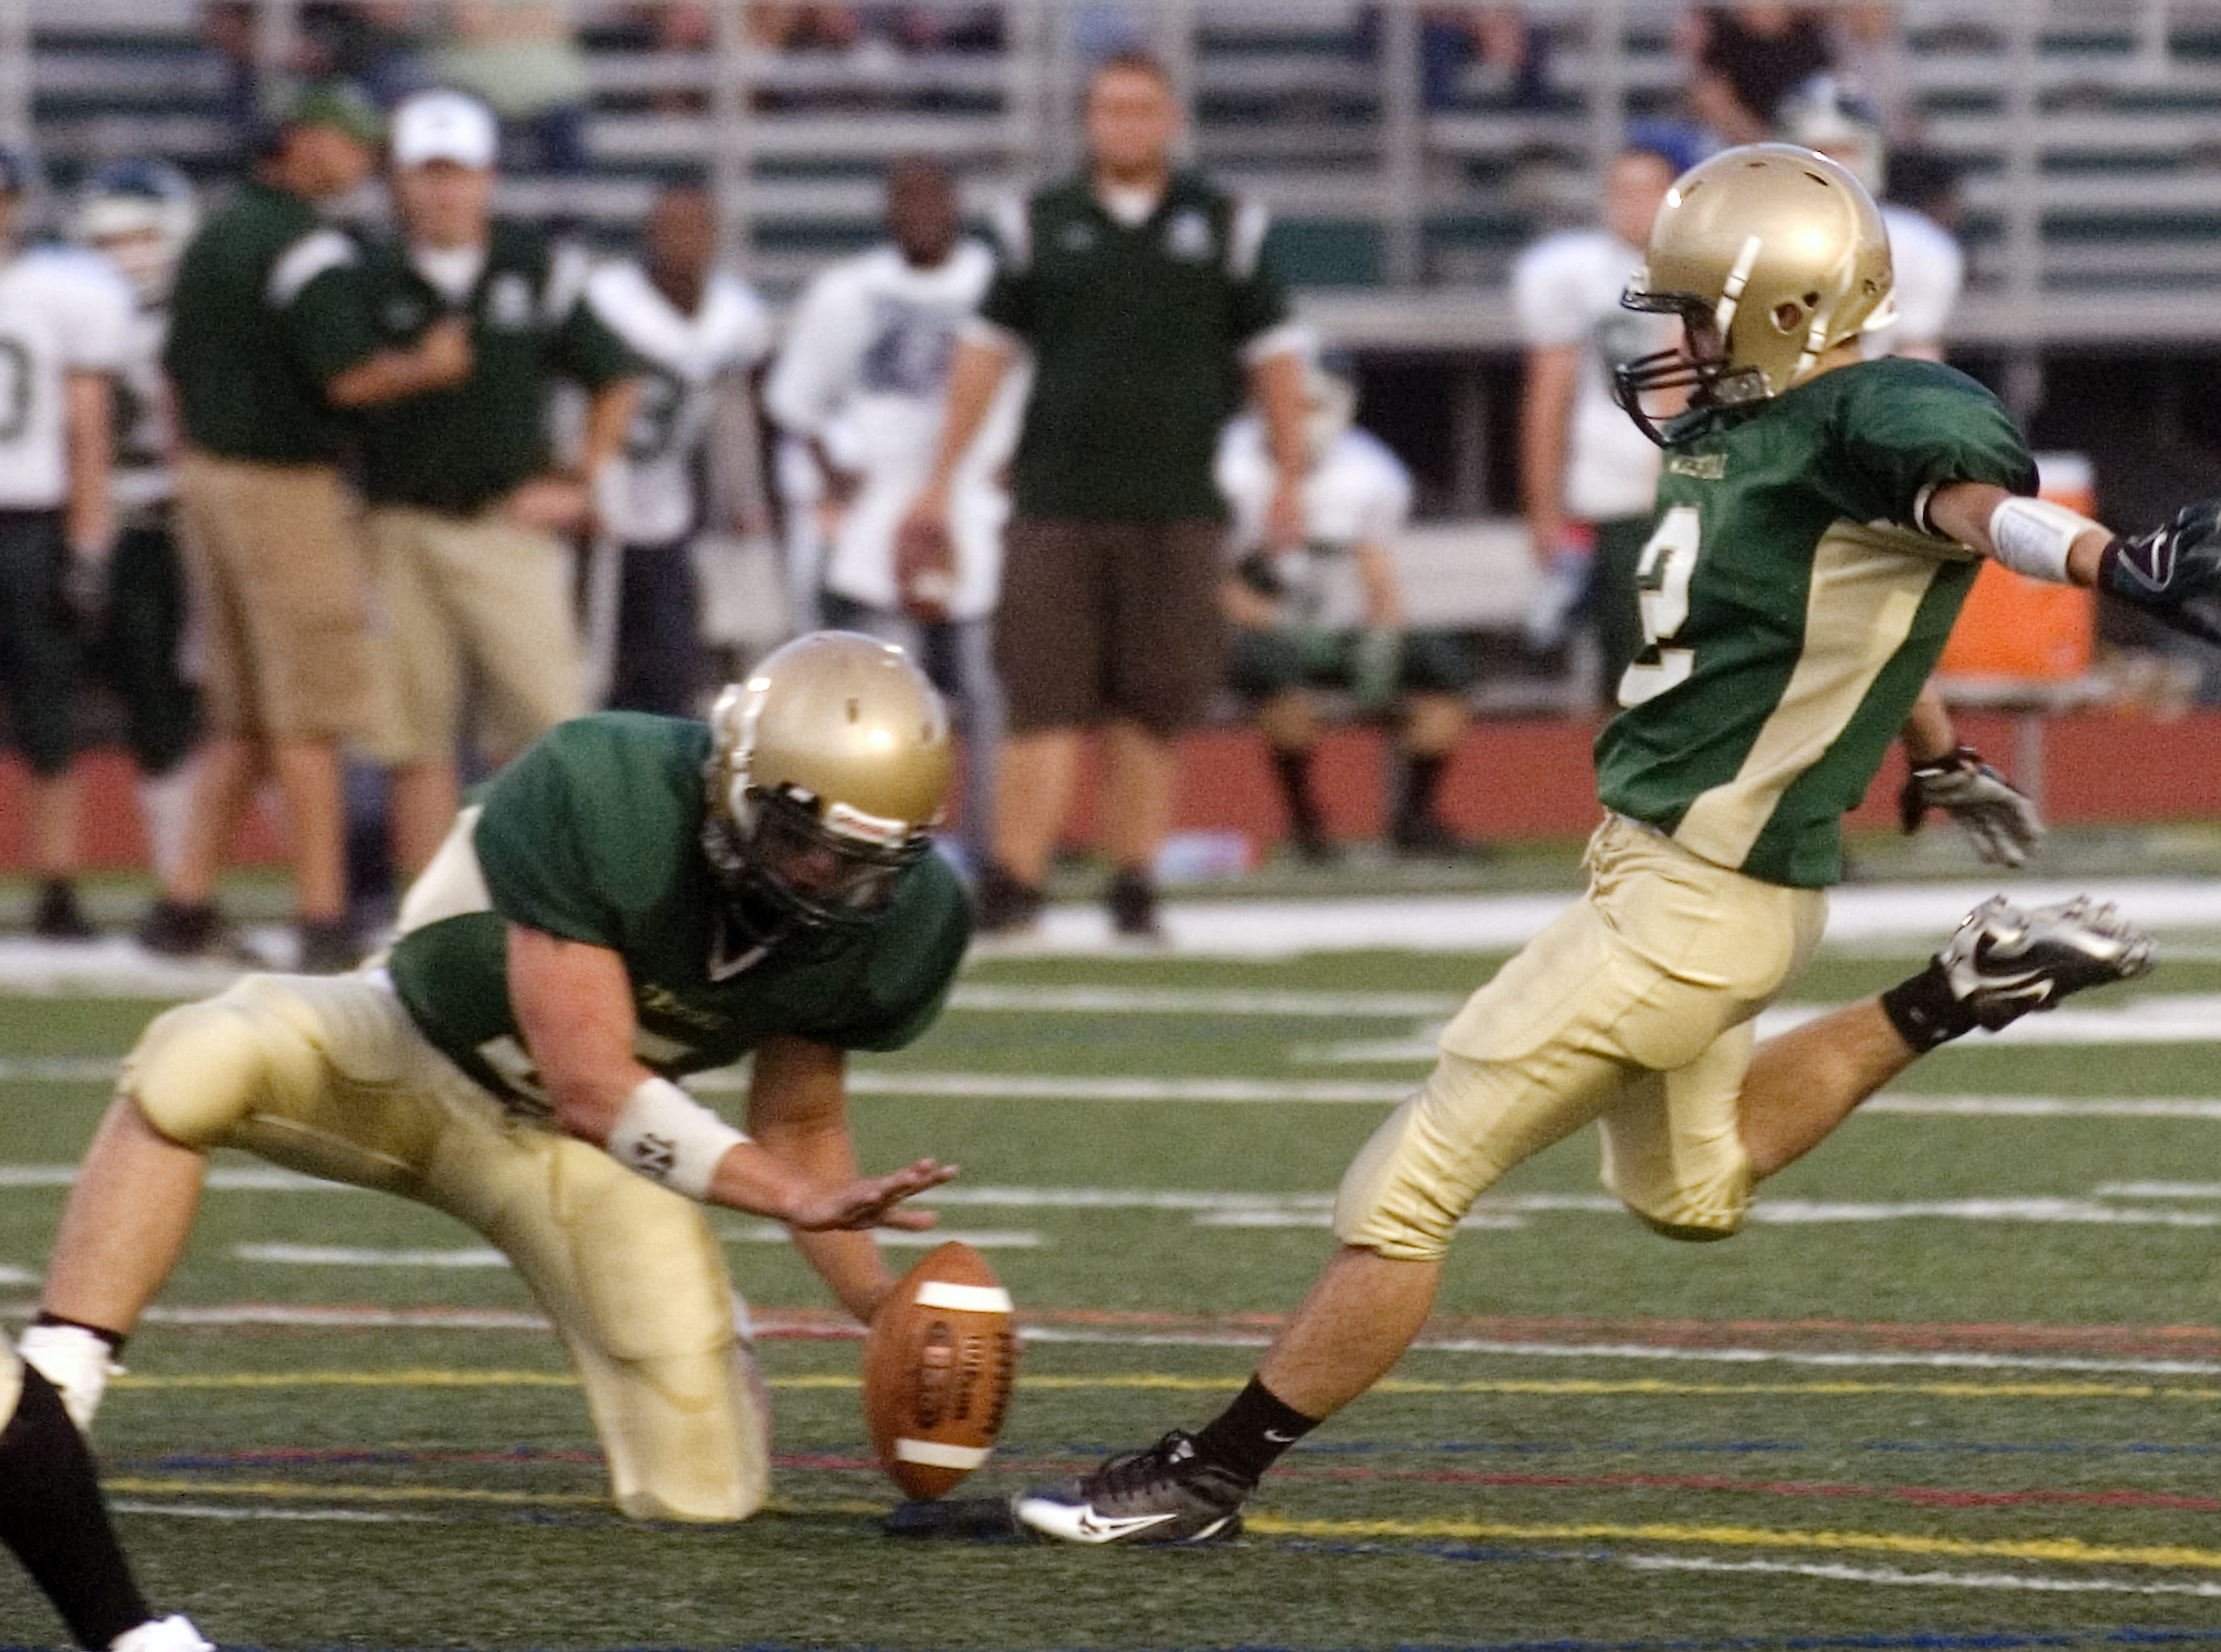 In 2008, Vestal's Nick Anderson goes for the extra point in the first quarter of the season-opener against Elmira South Side at Dick Hoover Stadium.